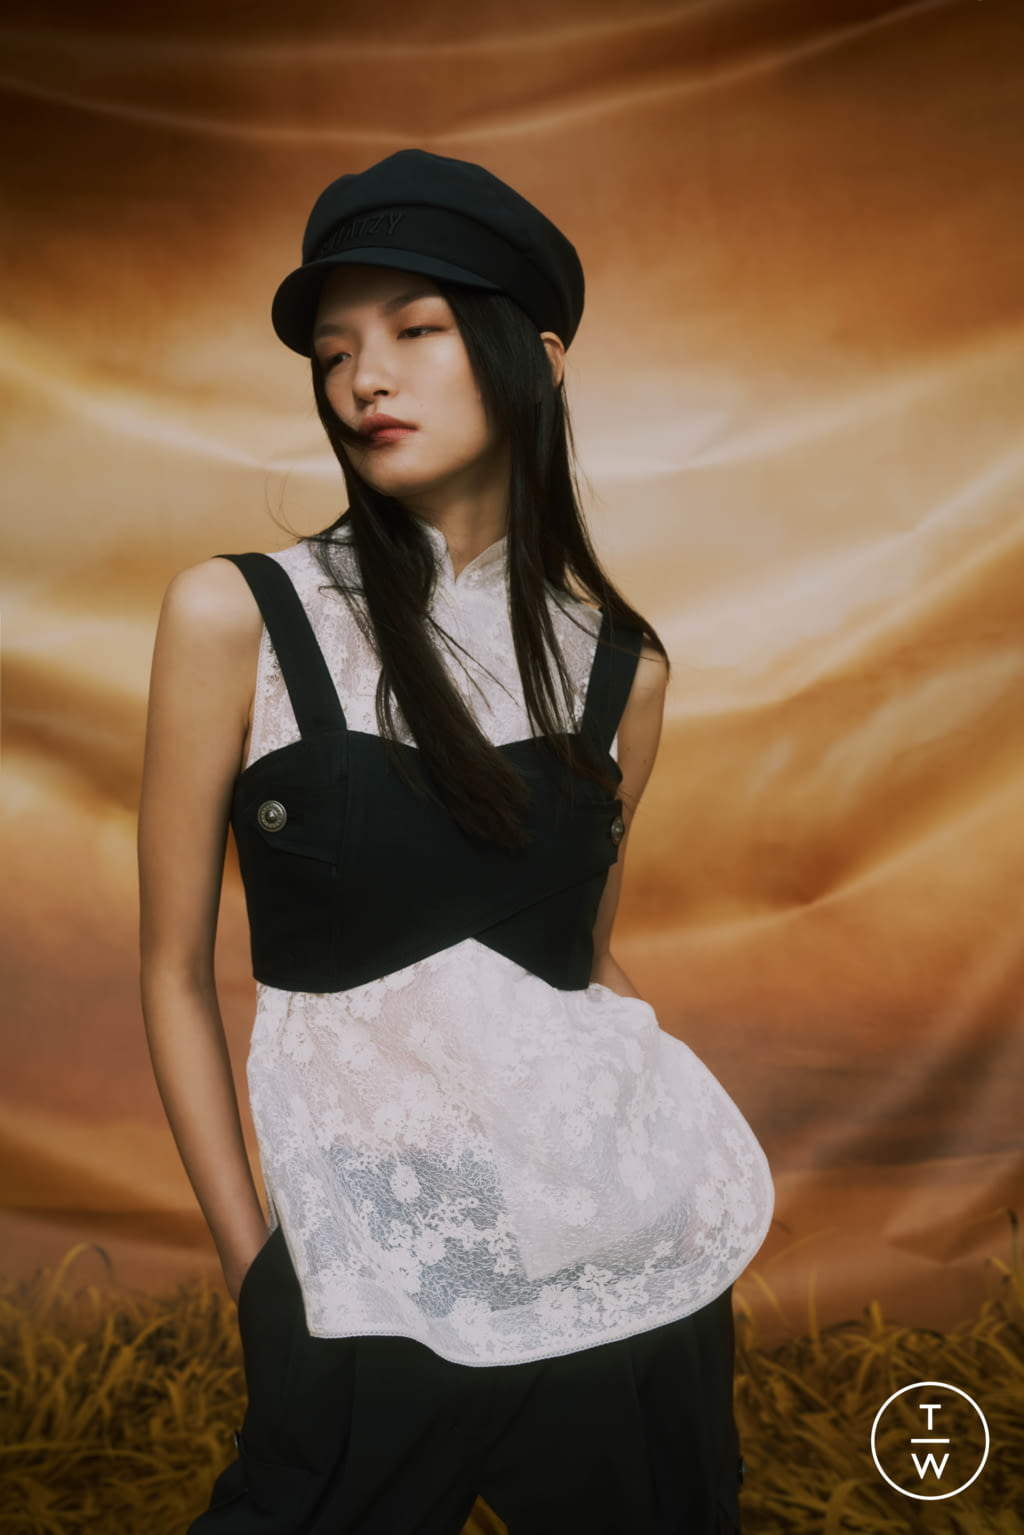 Shiatzy Chen Ss21 Womenswear 13 The Fashion Search Engine Tagwalk Chen has been gracious enough to share the week 10 tiers along with his analysis below. tagwalk